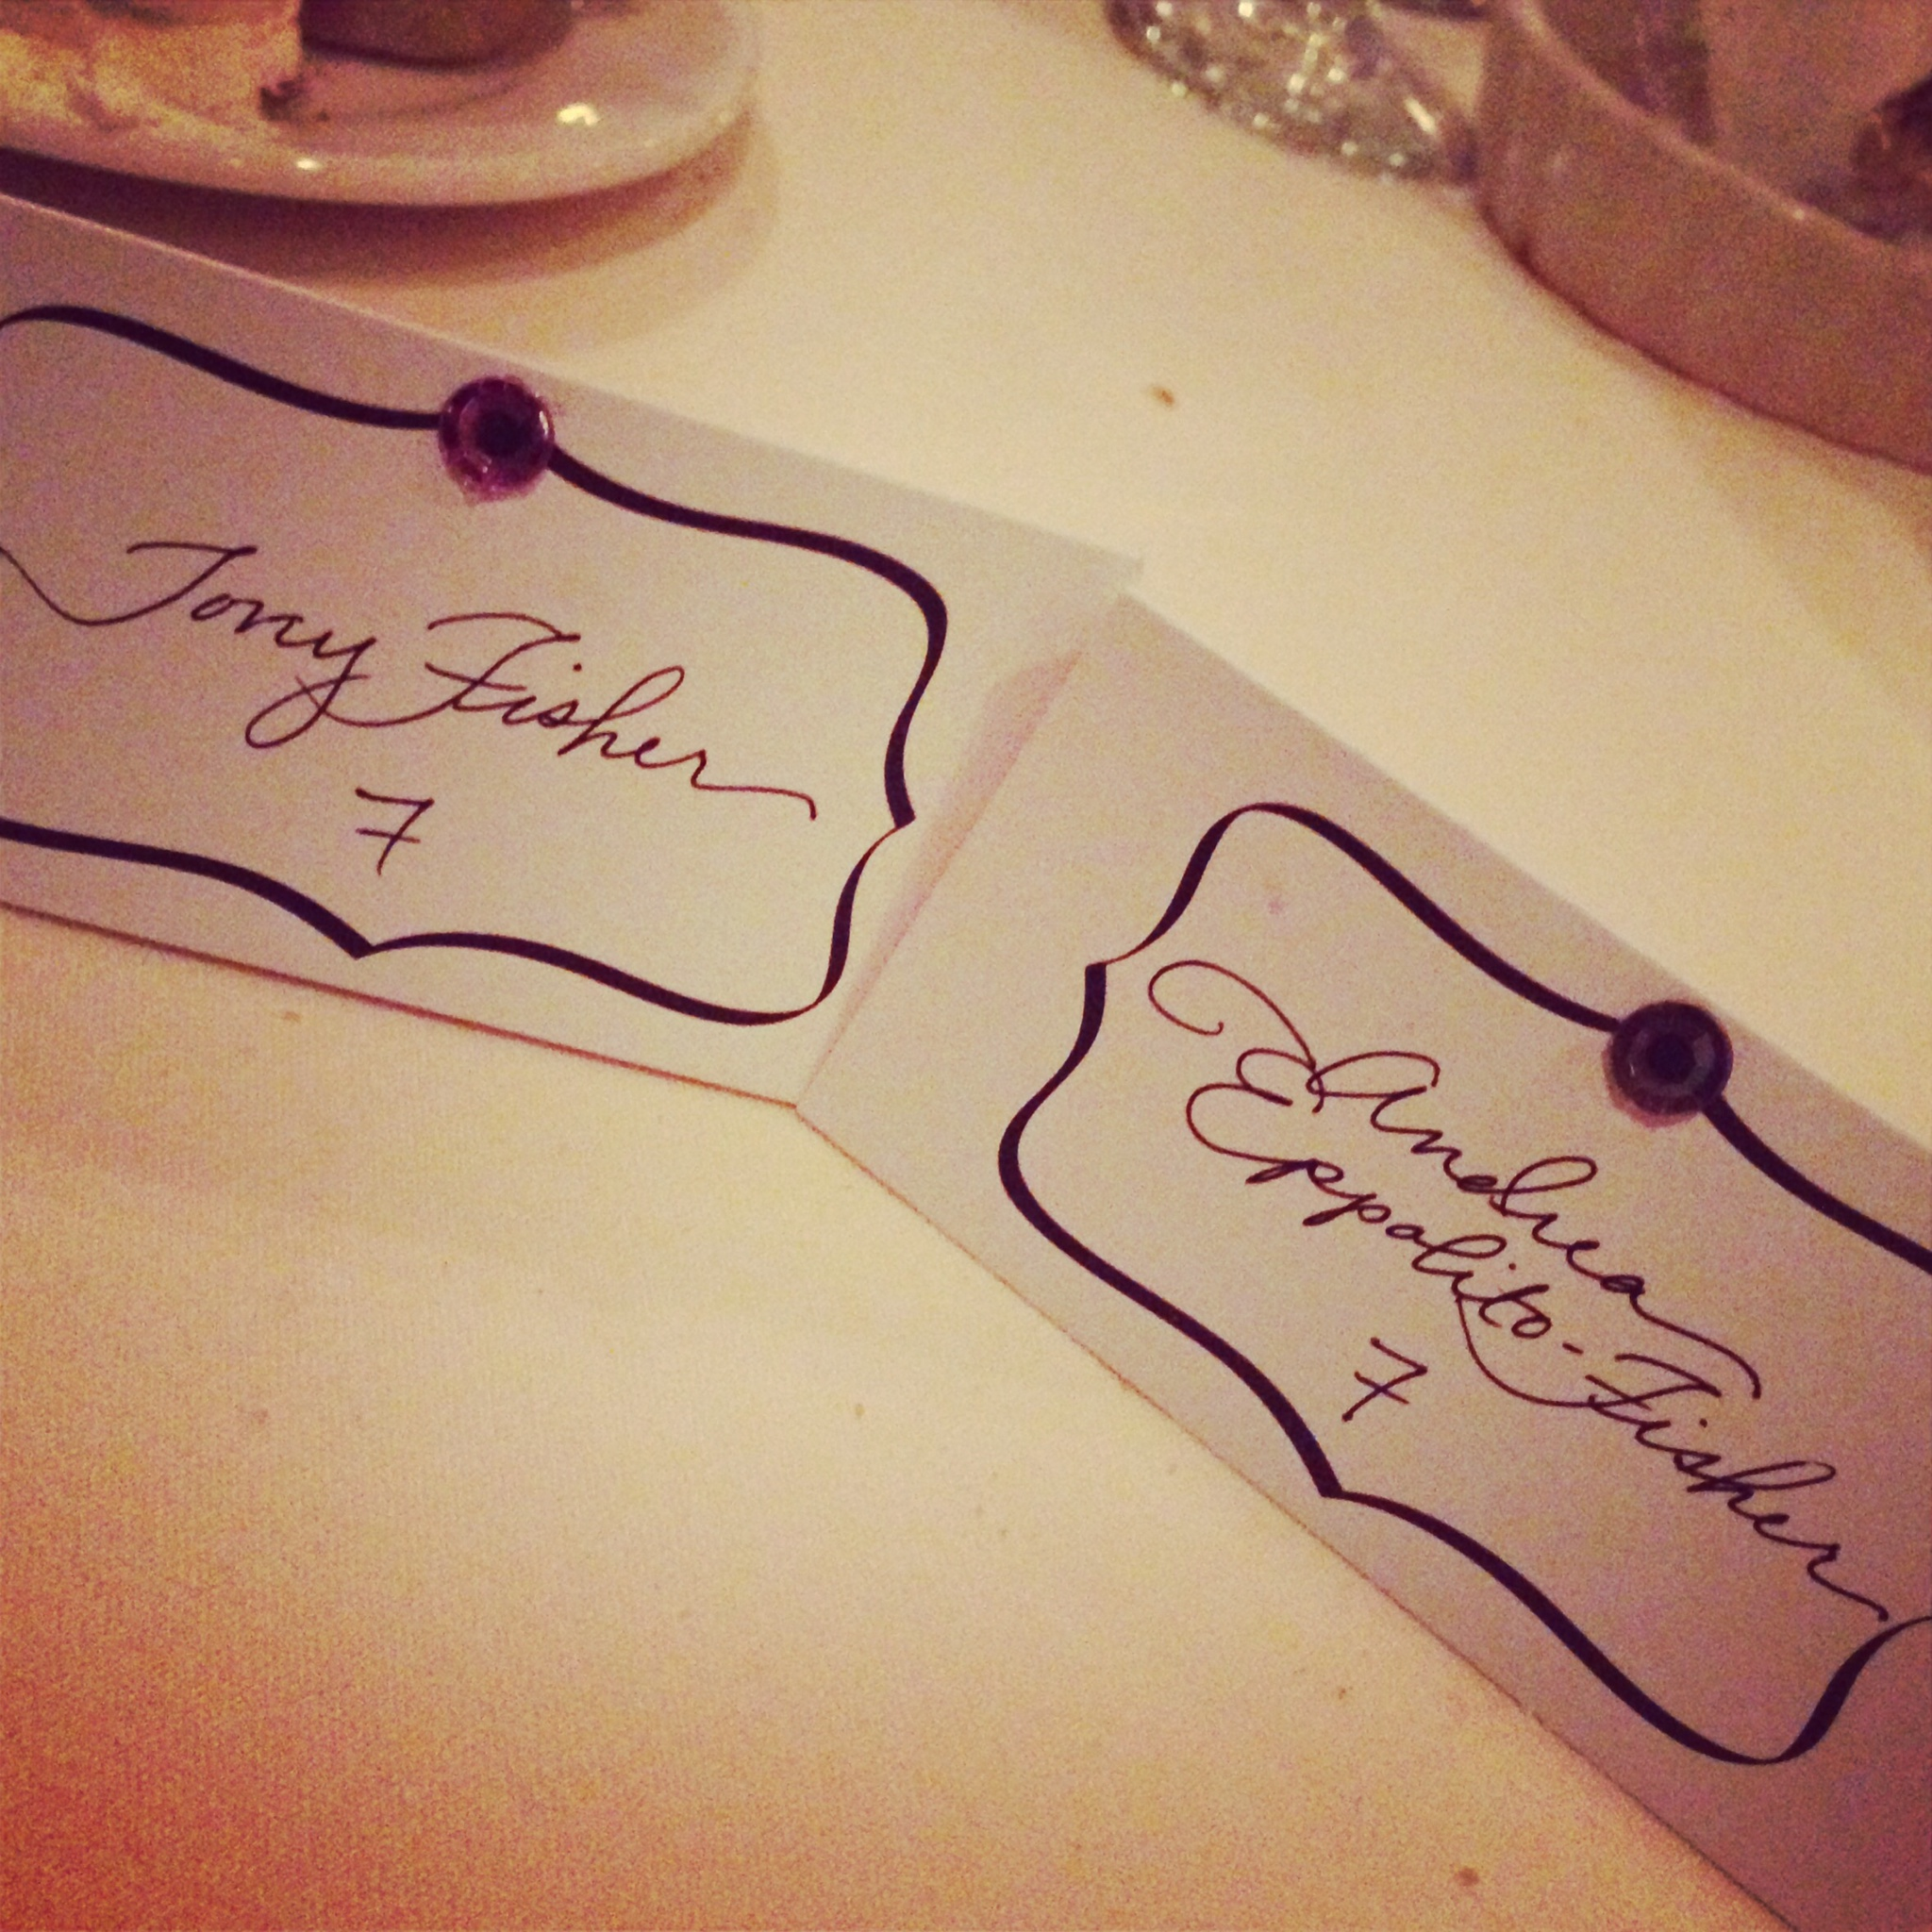 The bride wrote each and ever escort card by hand.